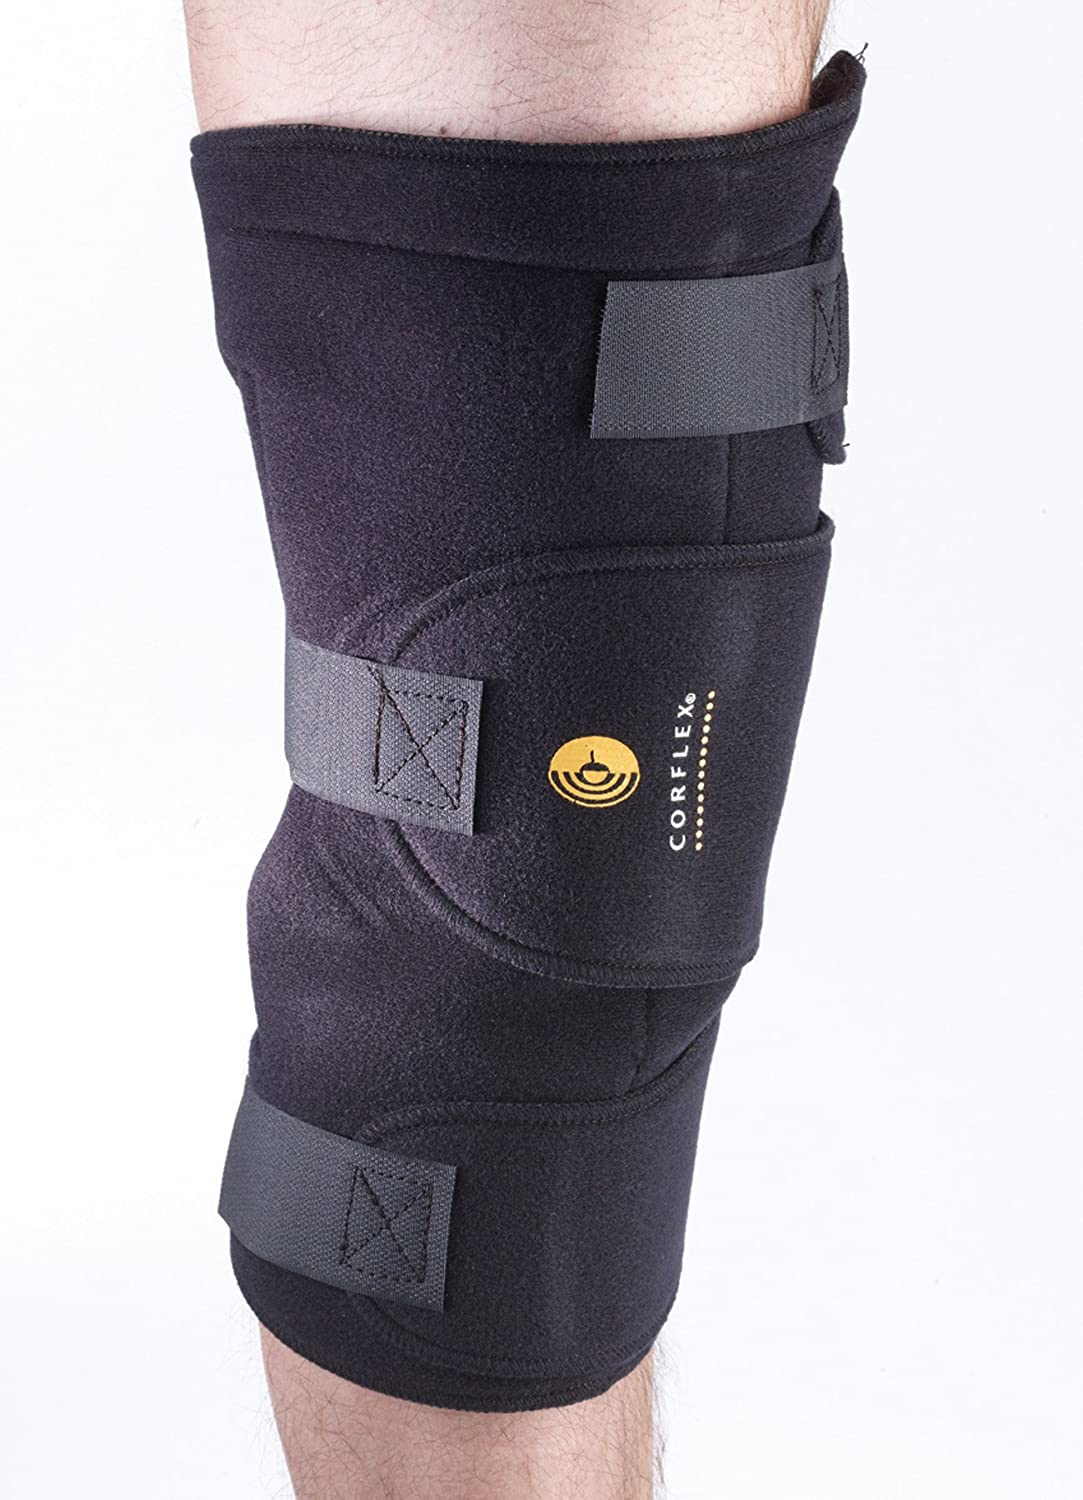 Corflex Cryotherm Knee Wrap - Financial sales sale Brace Pack-3 Pockets Ice with Trust